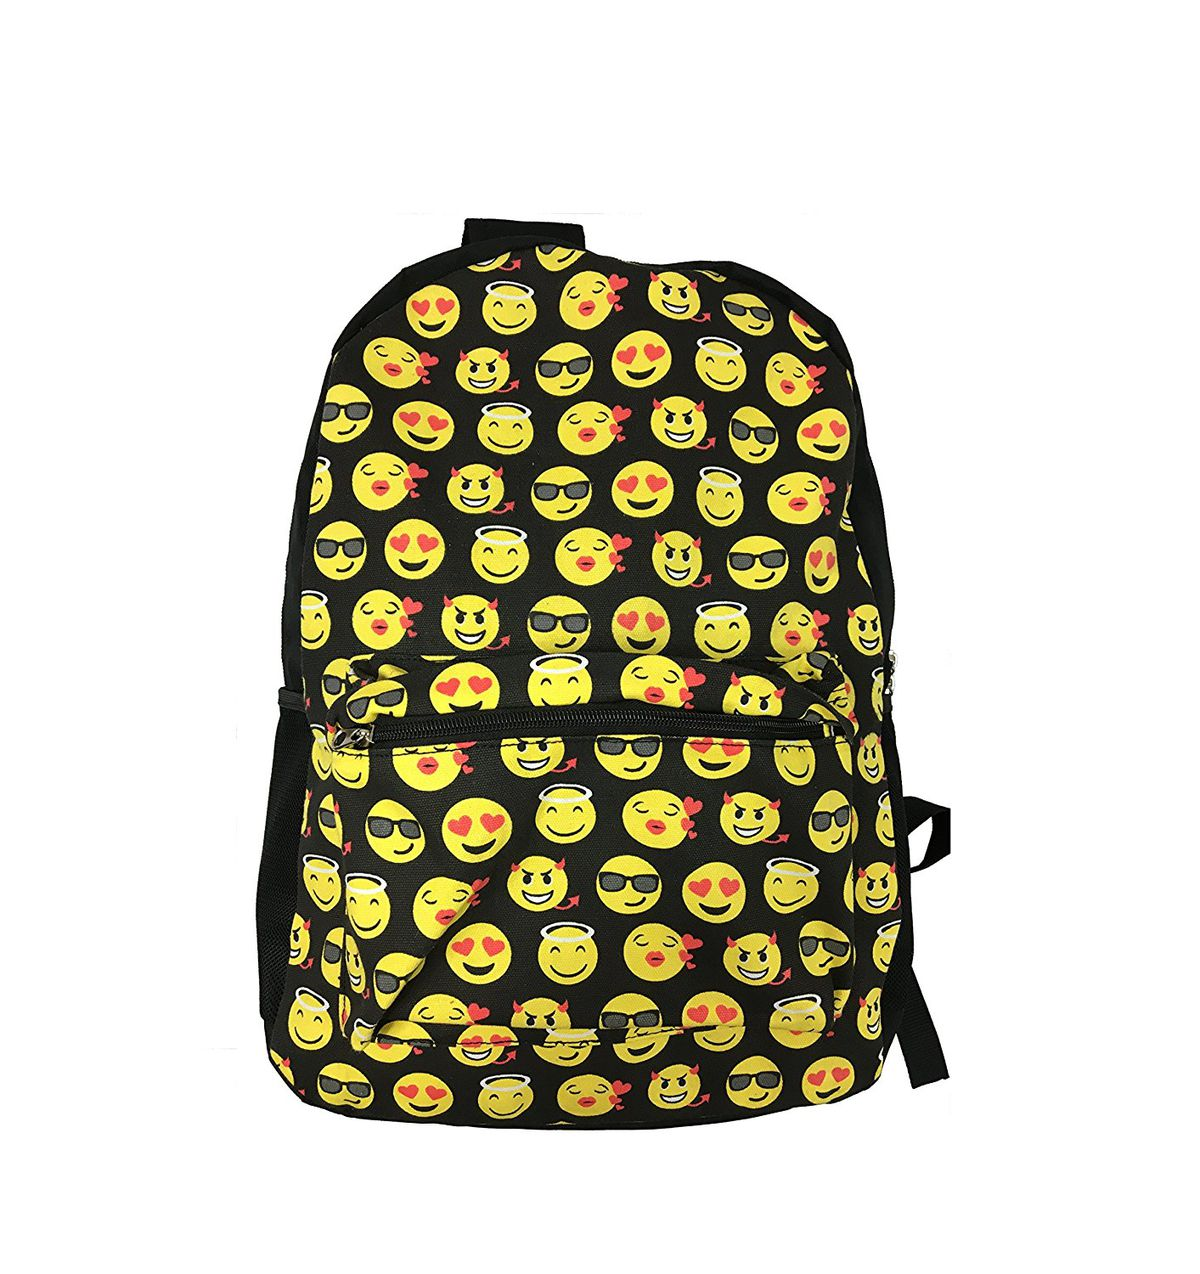 Thee Desire Deluxe emojis shoulder book bag is down to £7.63.